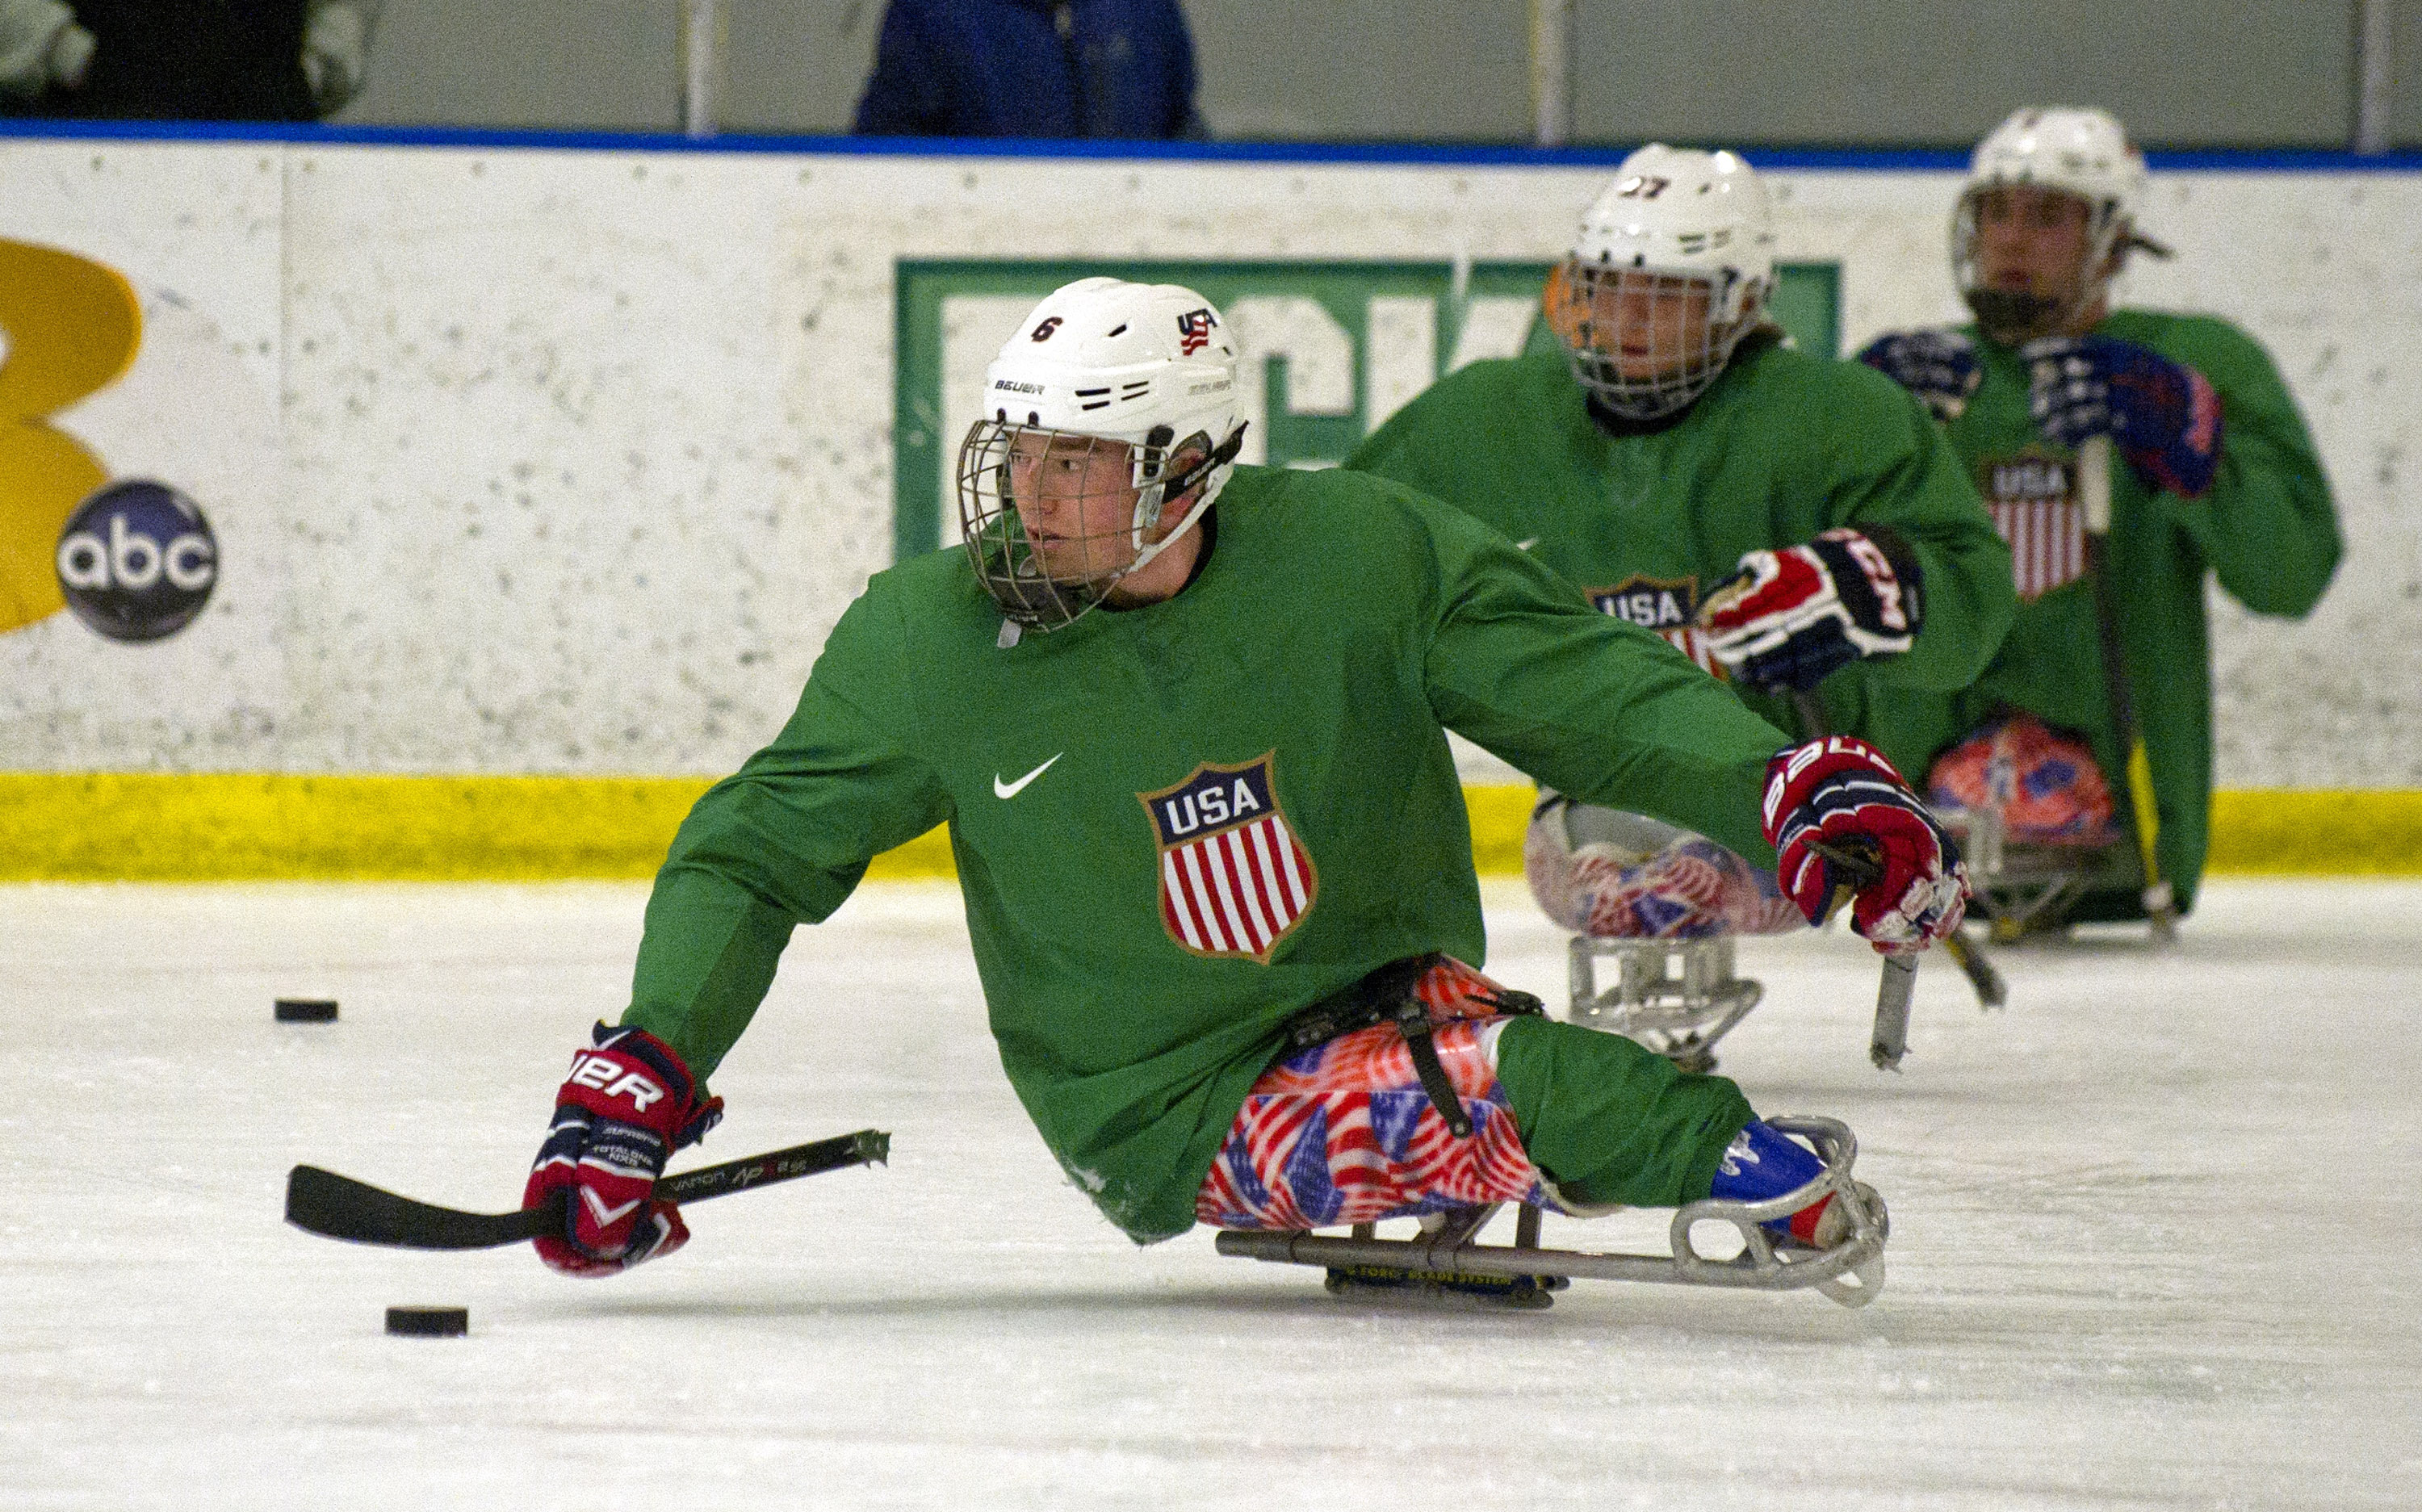 Declan Farmer is one of two Florida natives competing for Team USA in the World Sled Hockey Challenge in Bridgewater, N.S.